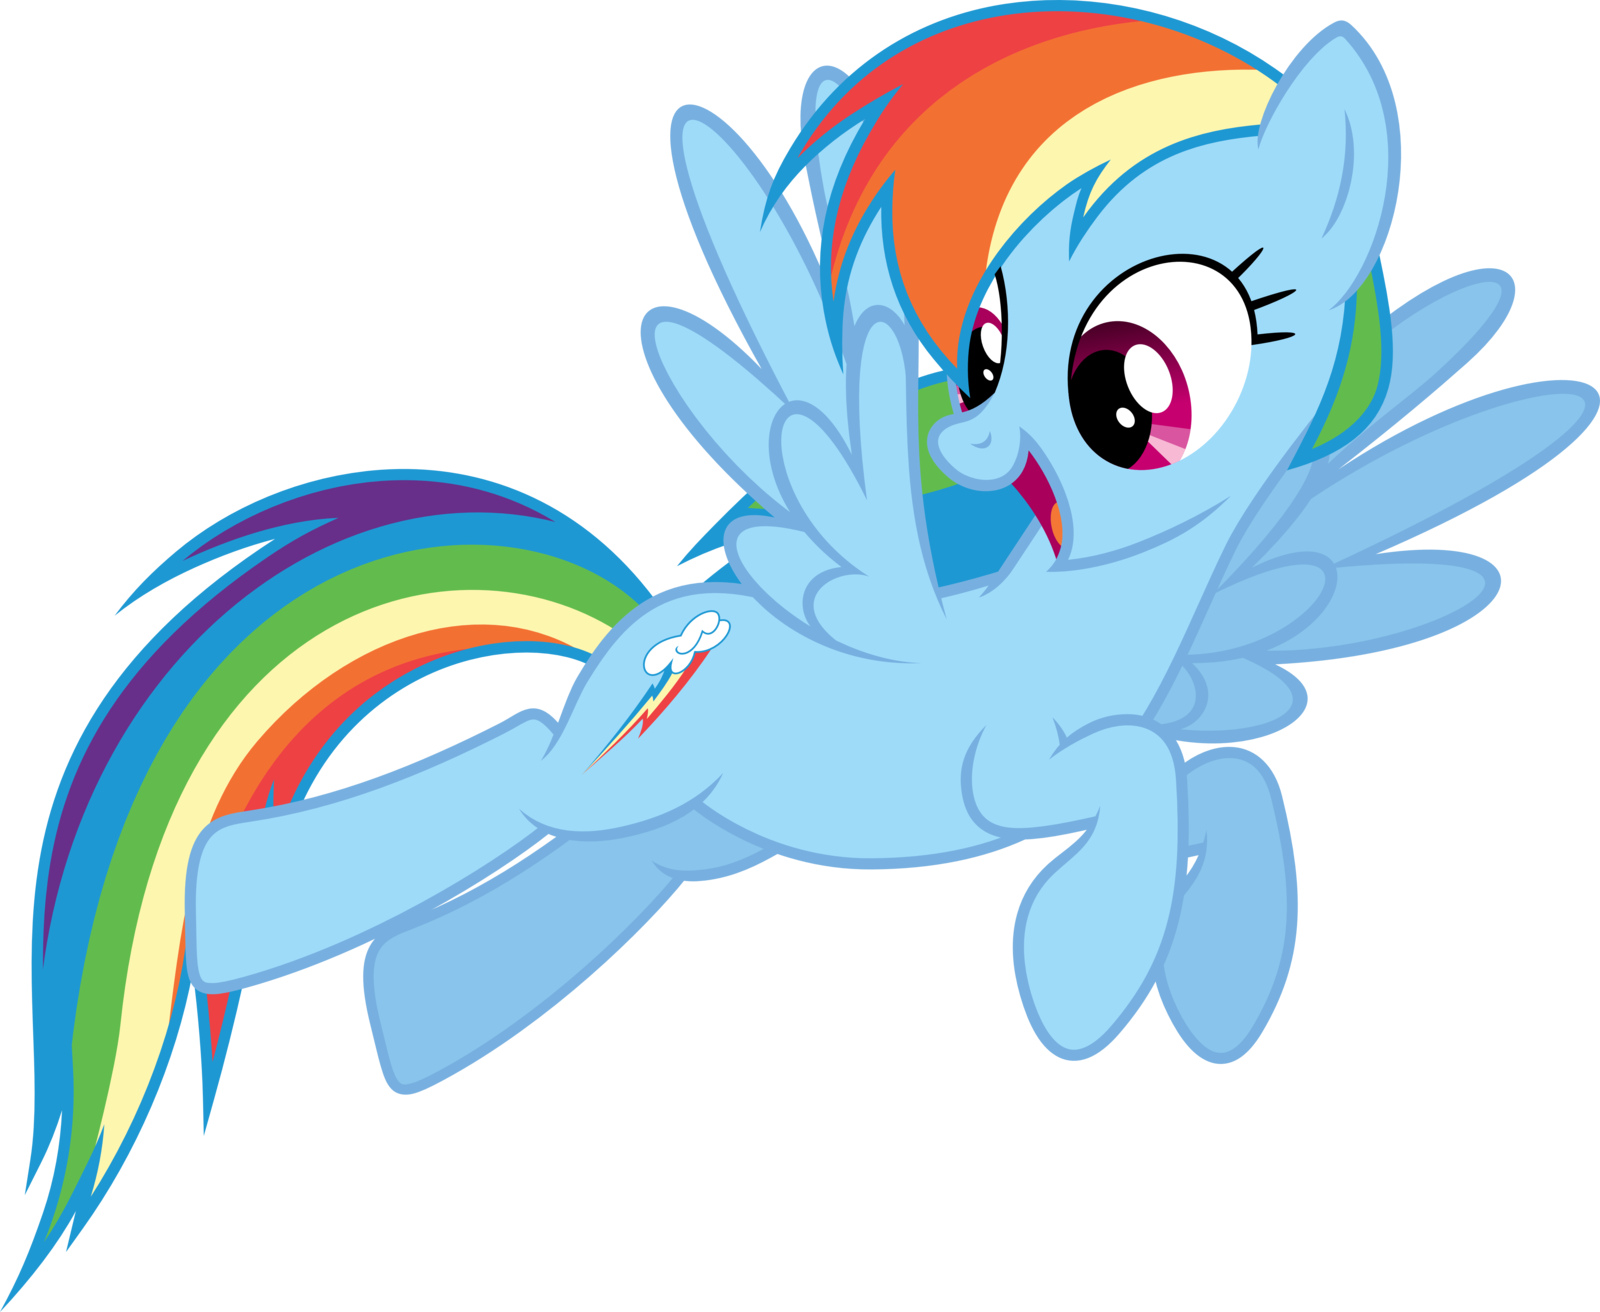 How well do you know rainbow dash?